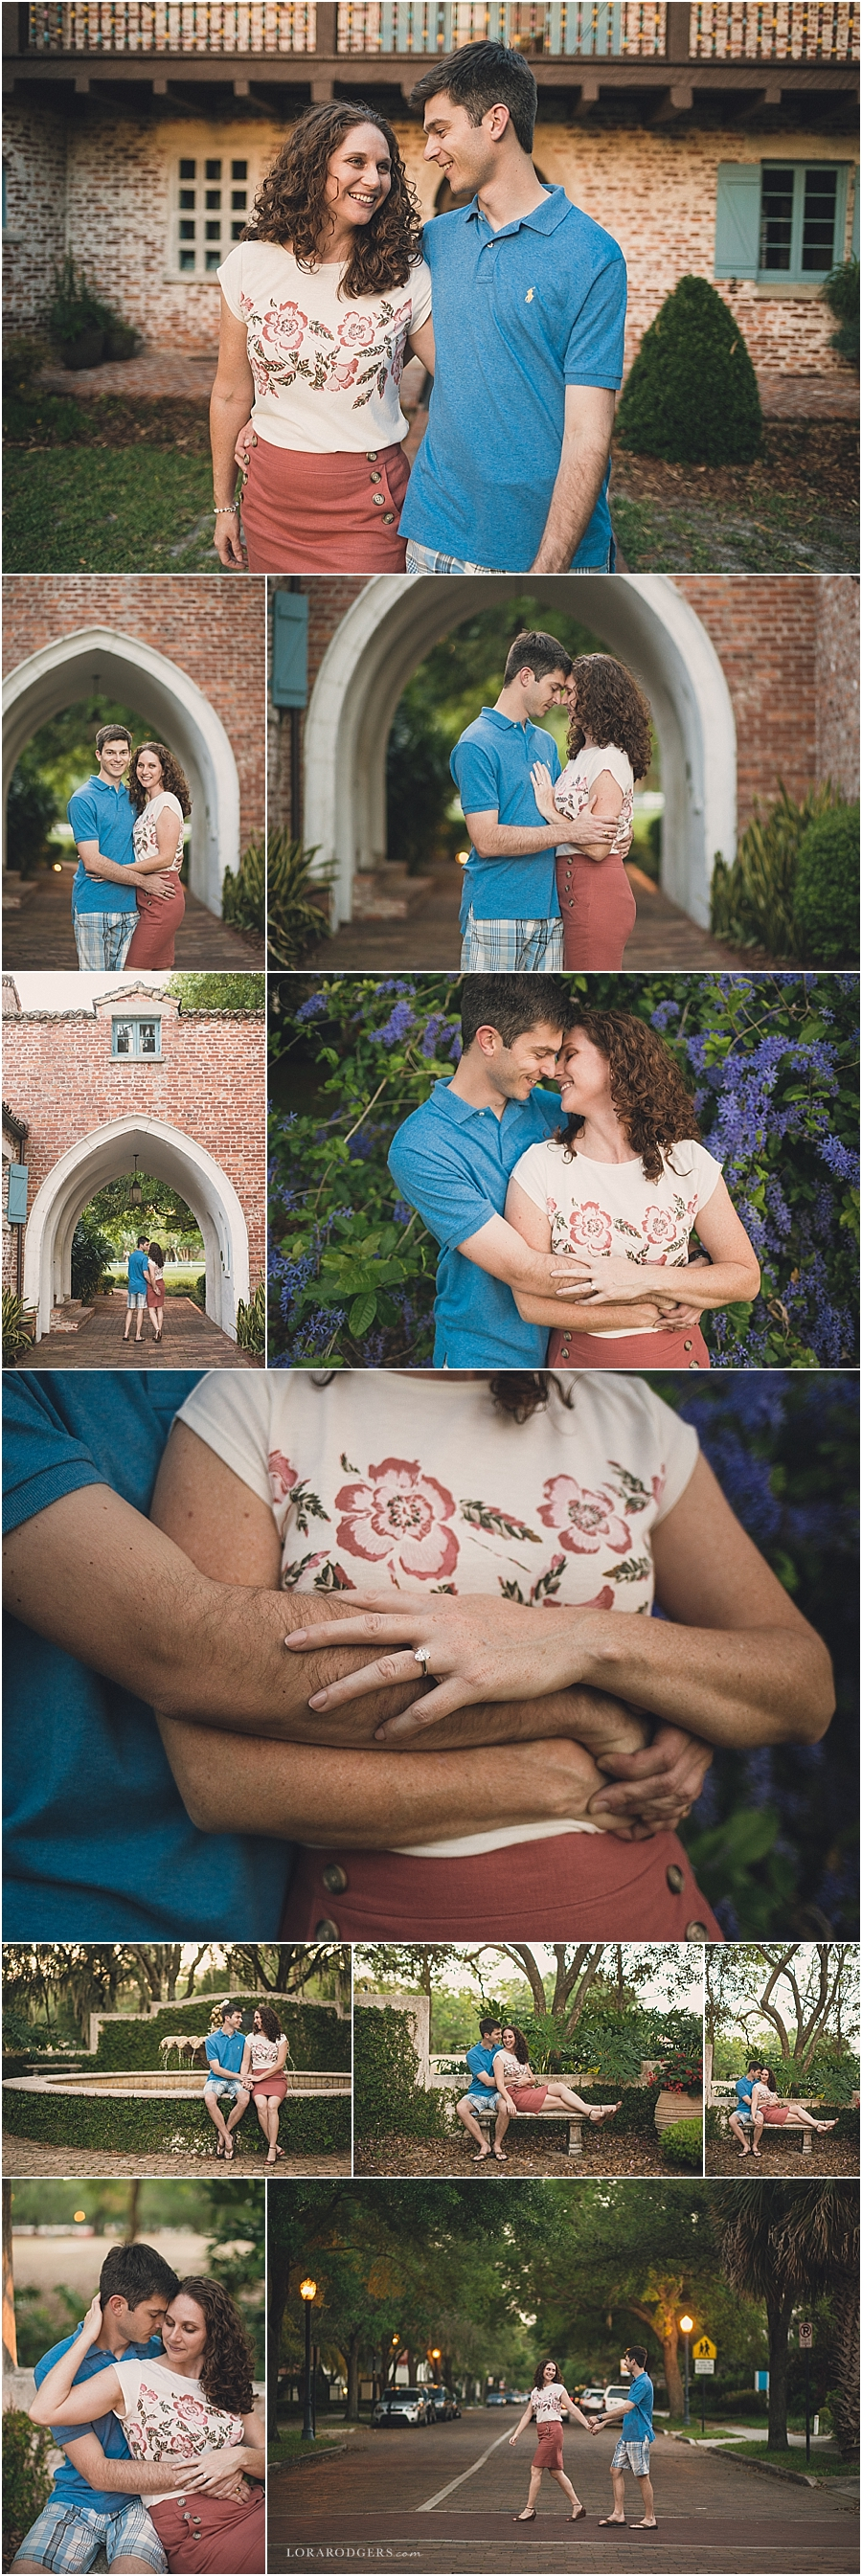 Kraft_Azalea_Casa_Feliz_Winter_Park_Florida_Engagement_004